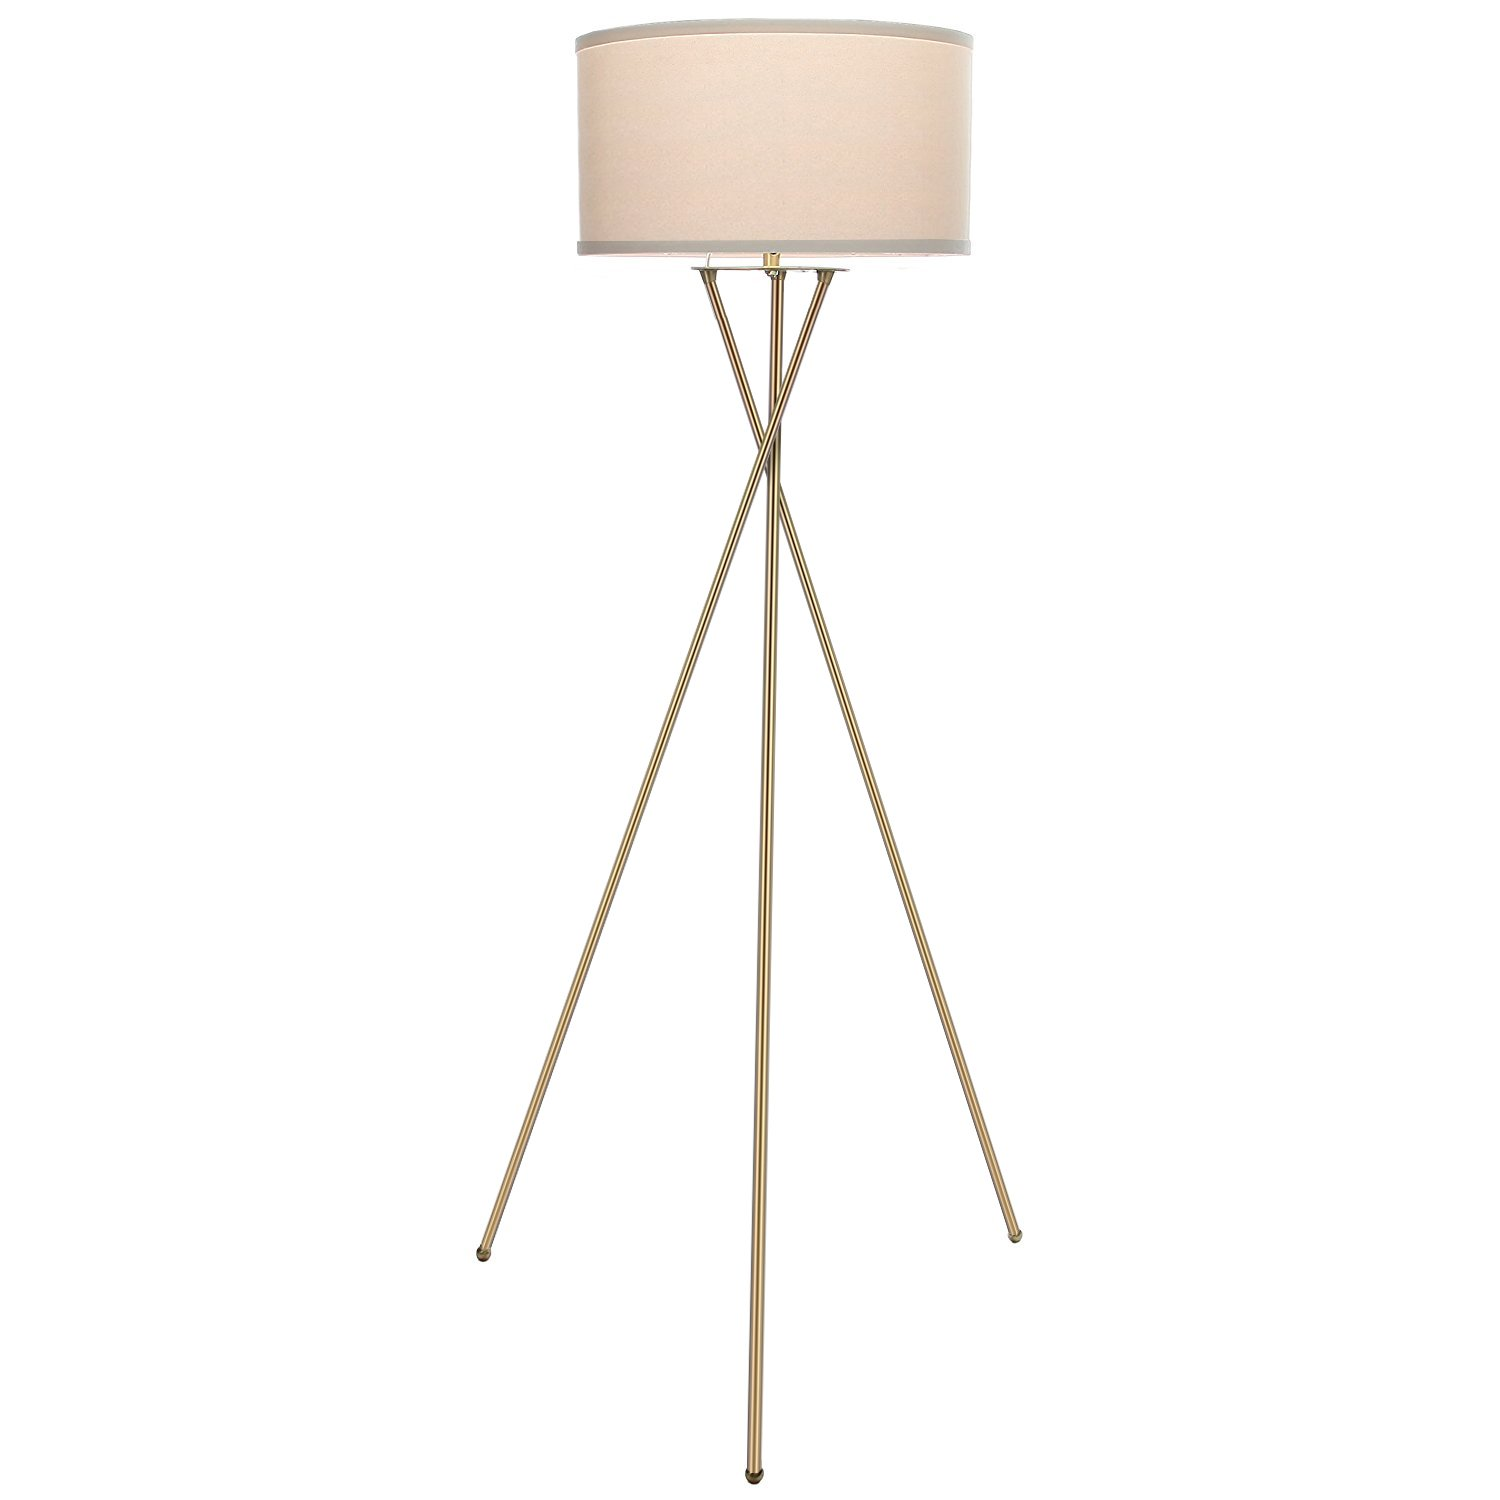 Brightech Jaxon Tripod LED Floor Lamp – Mid Century Modern Living Room Standing Light – Tall Contemporary Drum Shade Uplight and Downlight for Bedroom or Office – Brass/Gold